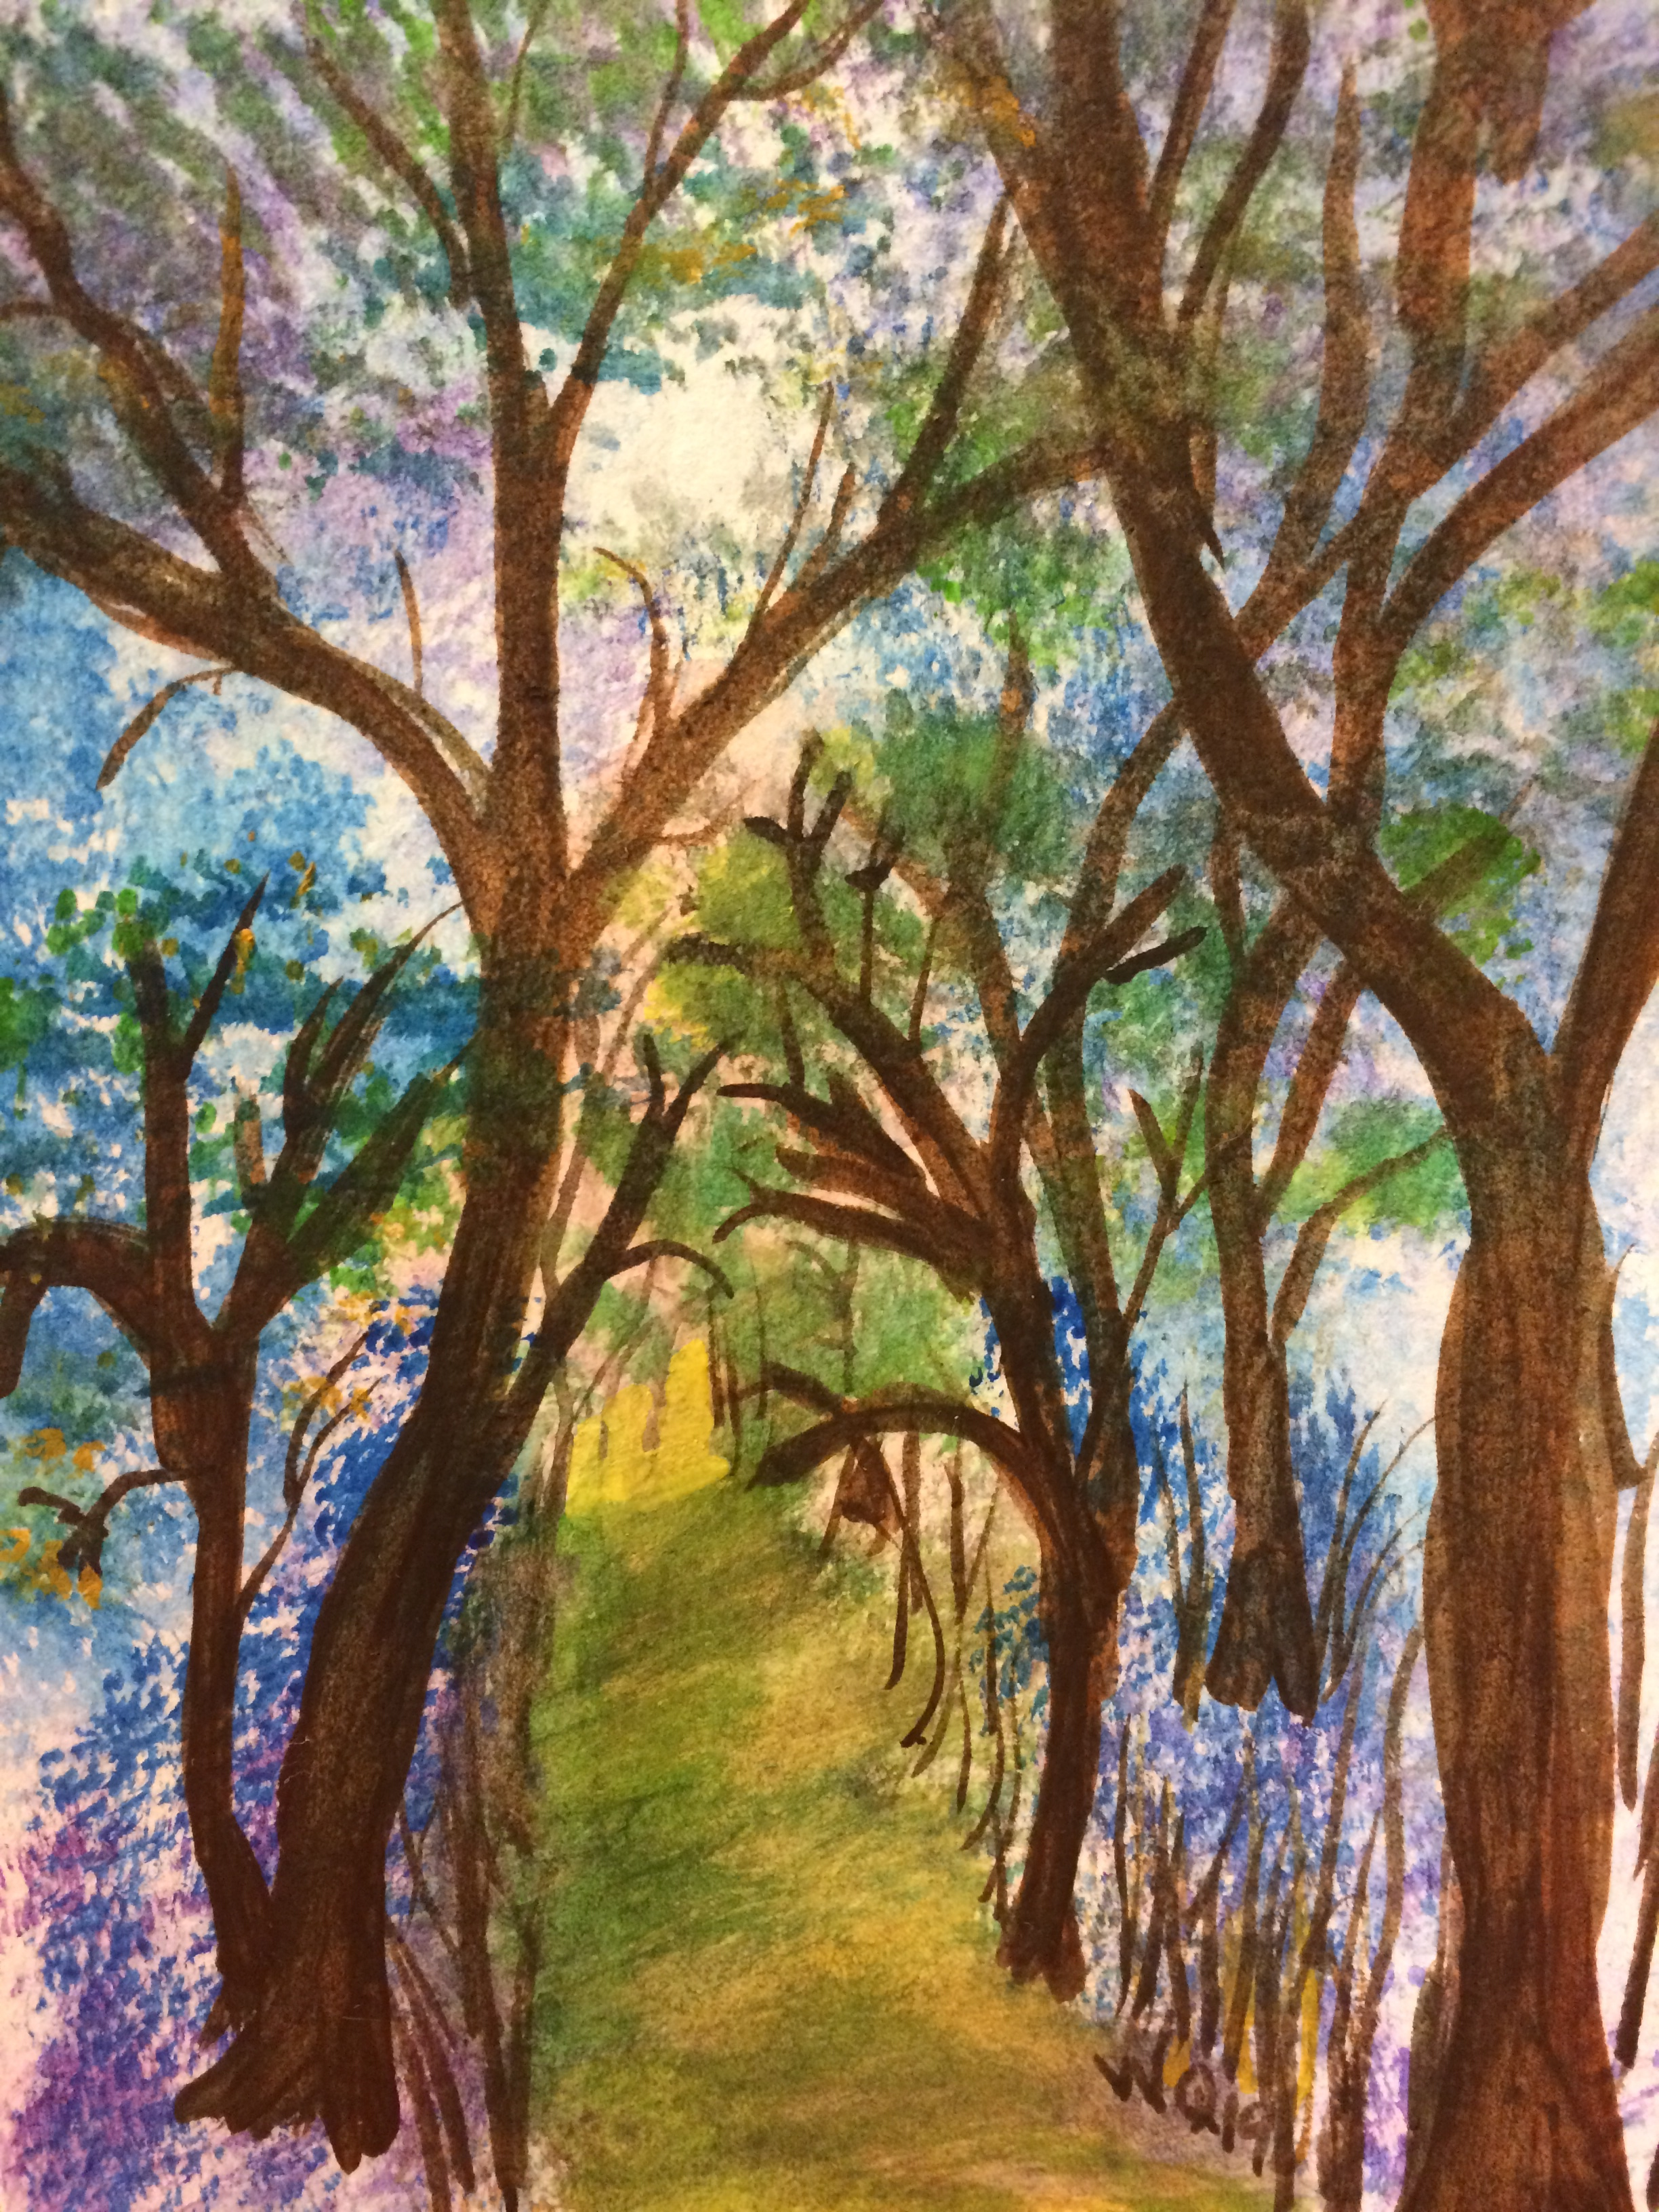 watercolour painting of trees and a path into a forest